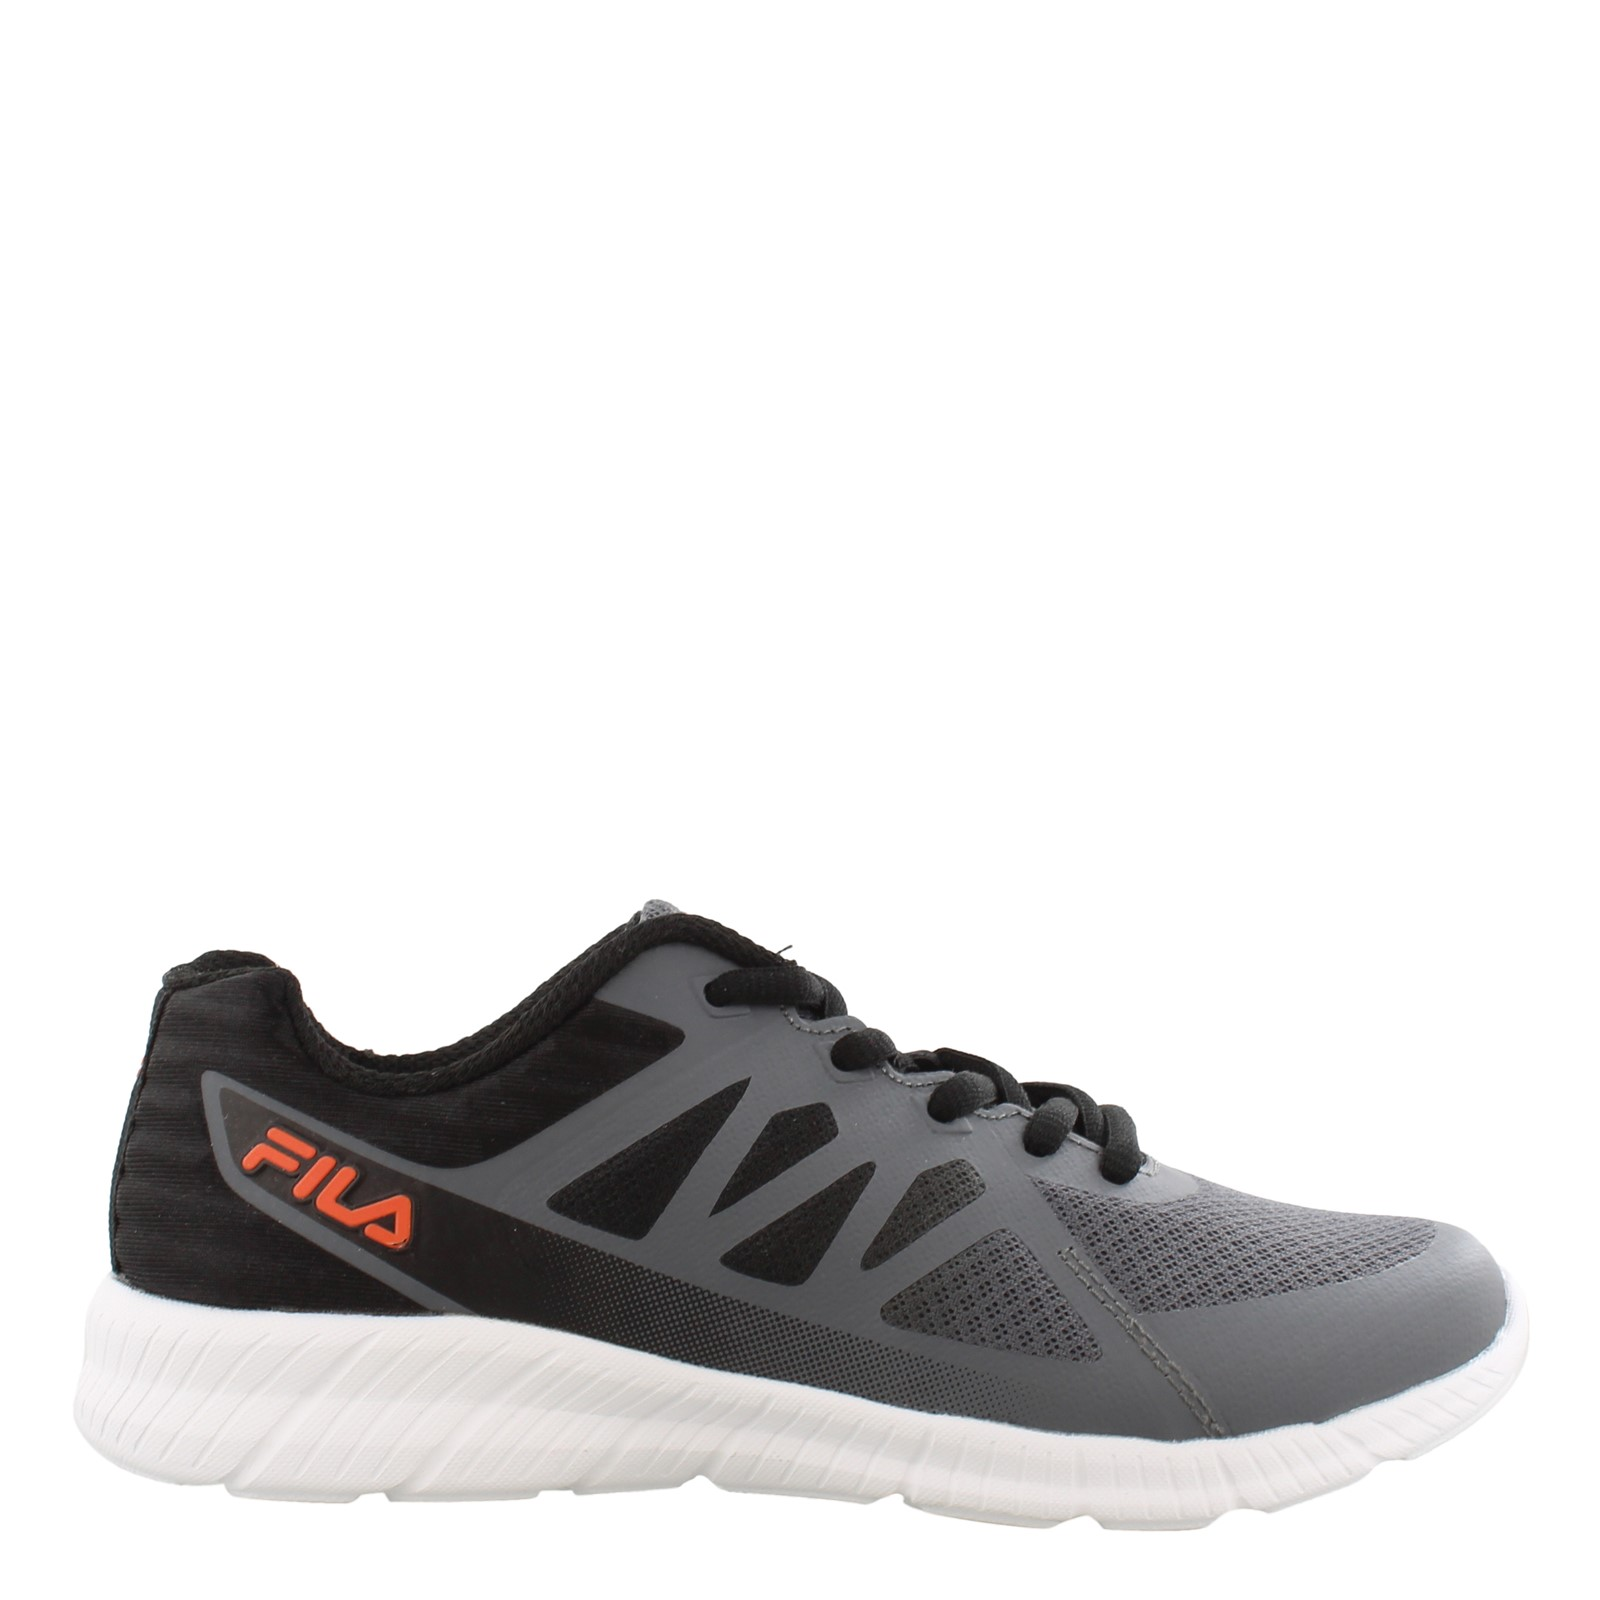 Boy's Fila, Finity Sneaker - Little Kid & Big Kid